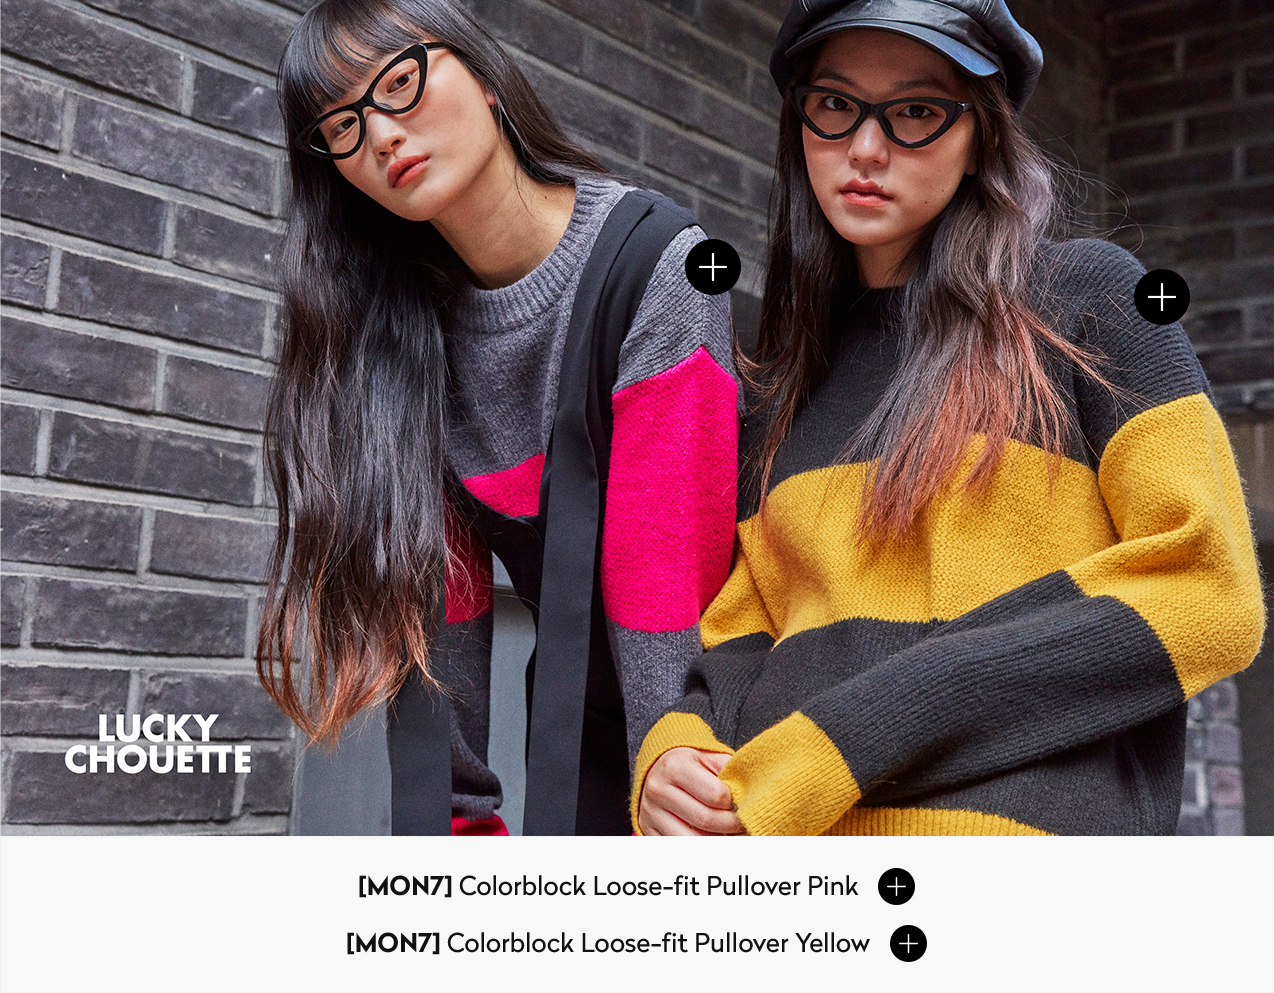 [MON7] Colorblock Loose-fit Pullover Pink & [MON7] Colorblock Loose-fit Pullover Yellow